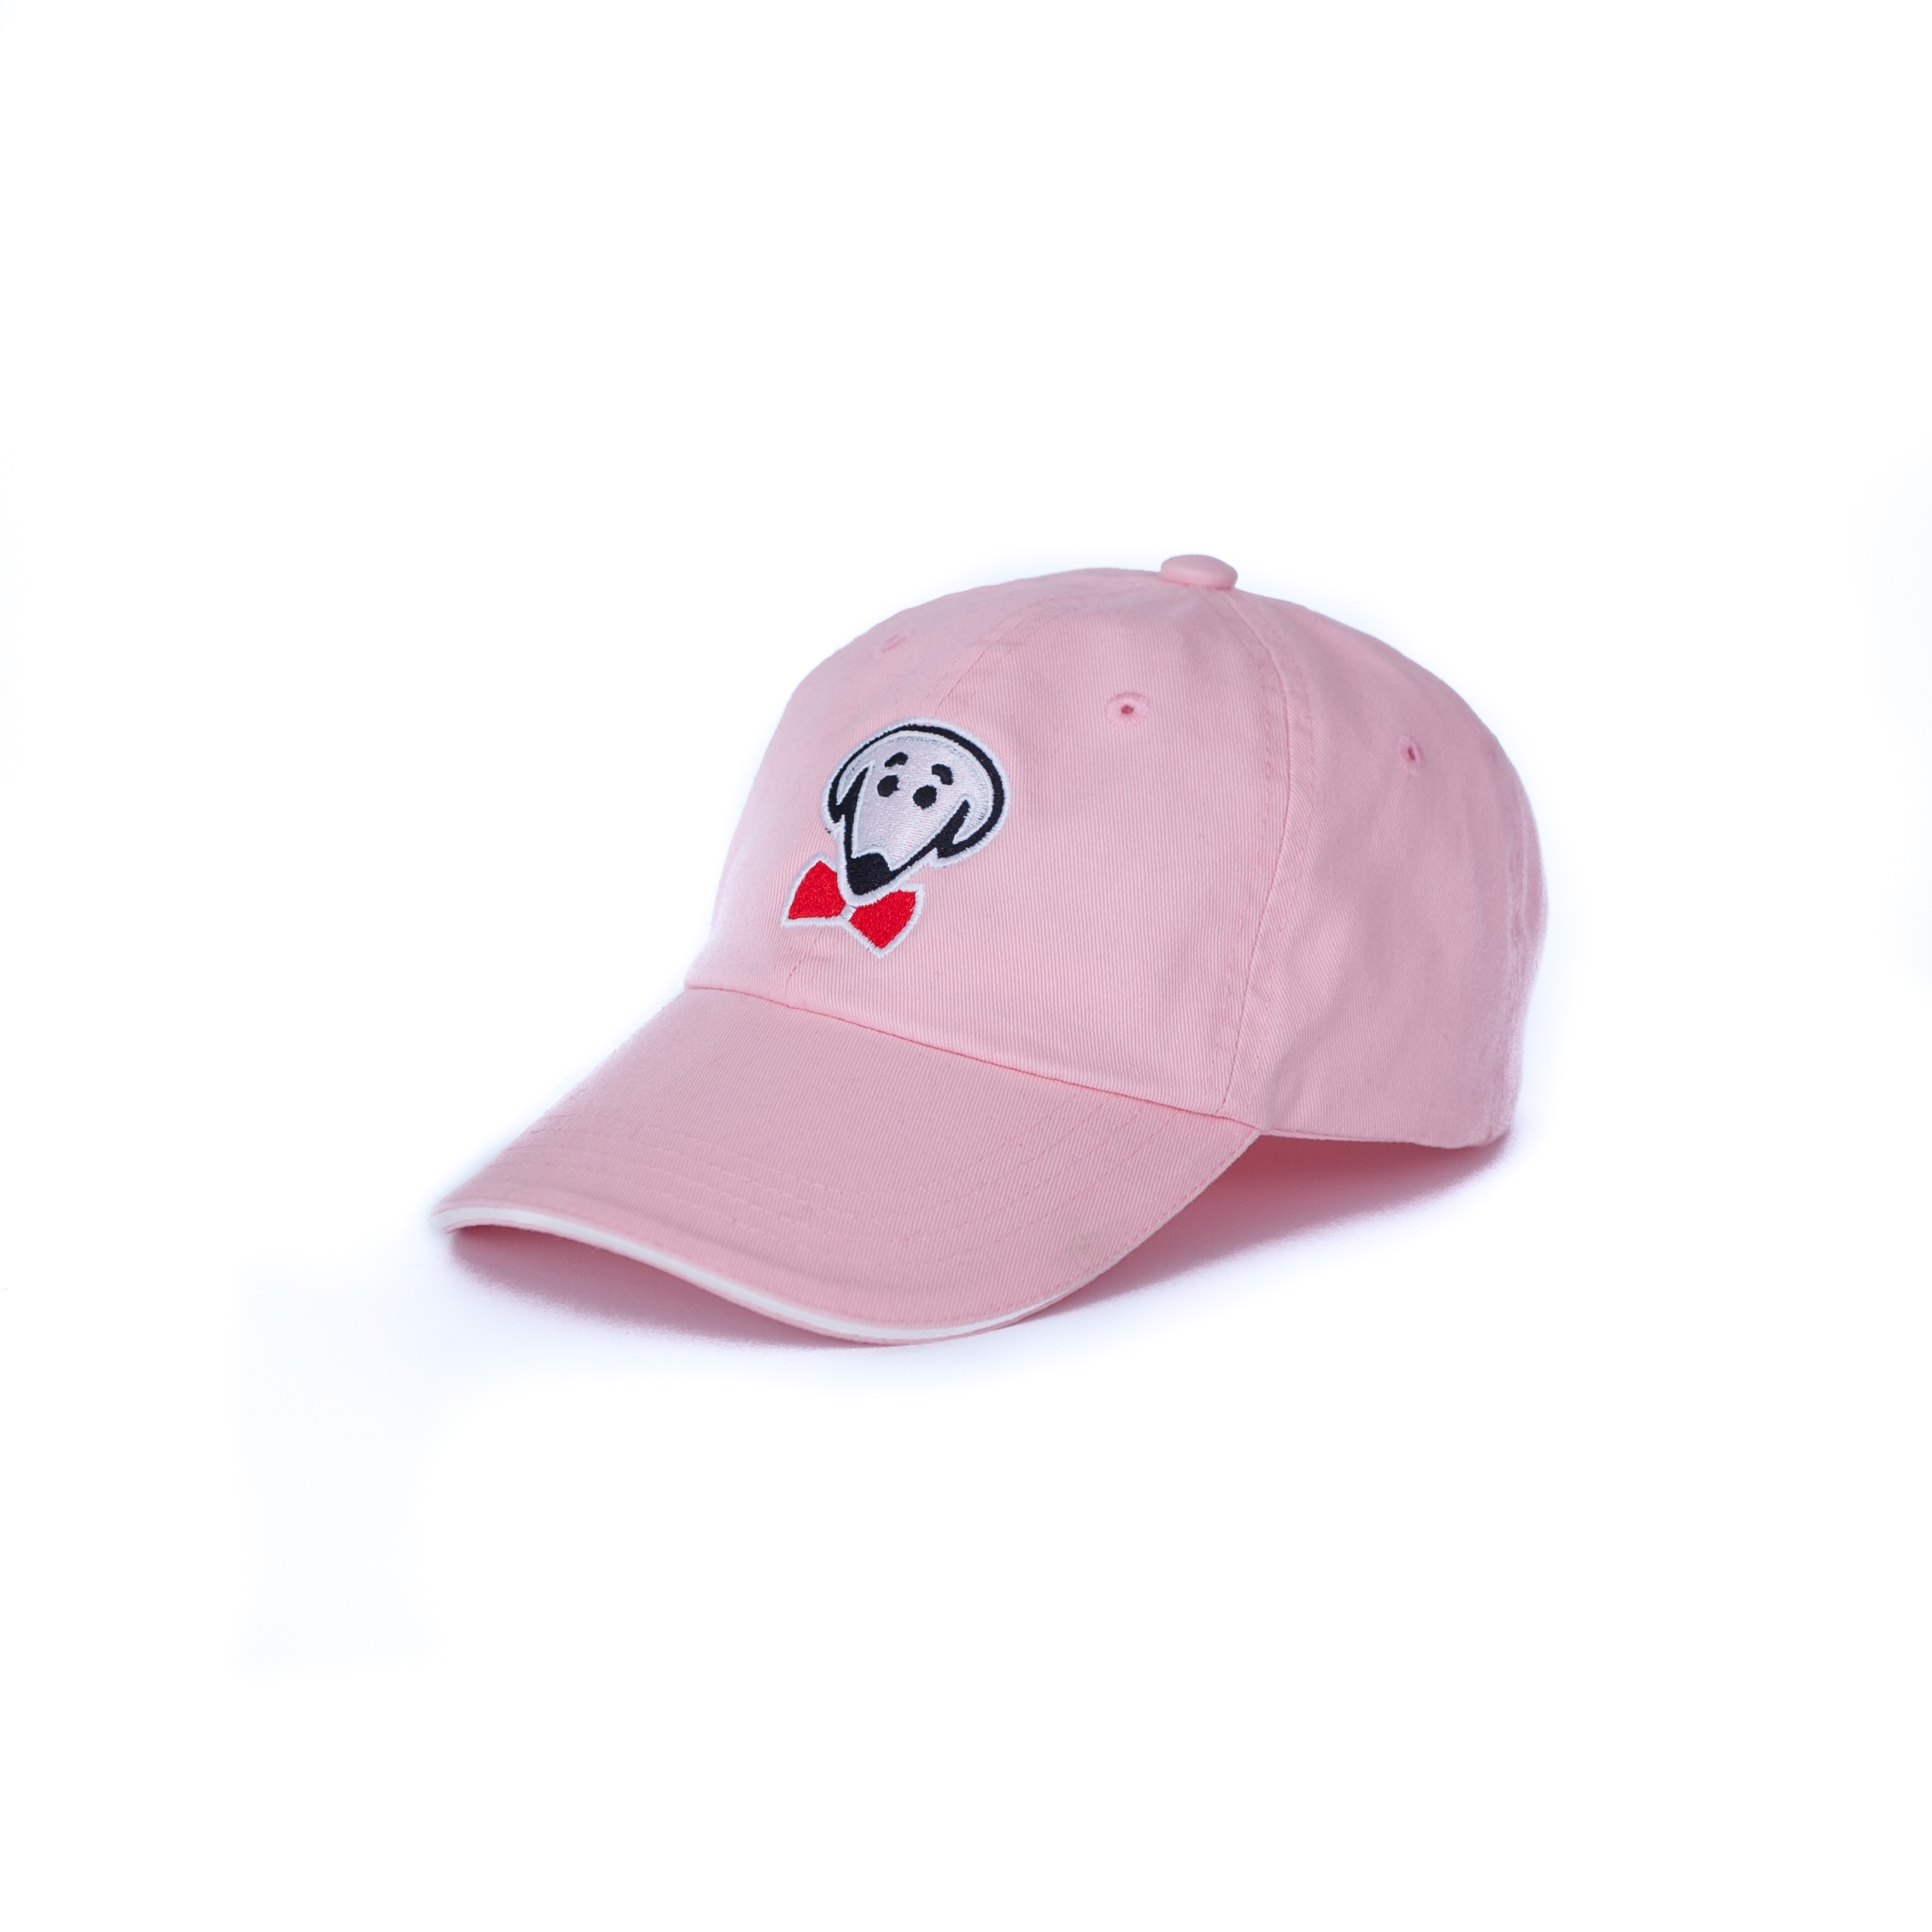 Bow Ties Dog Face Logo Baseball Hat-Light Pink with White